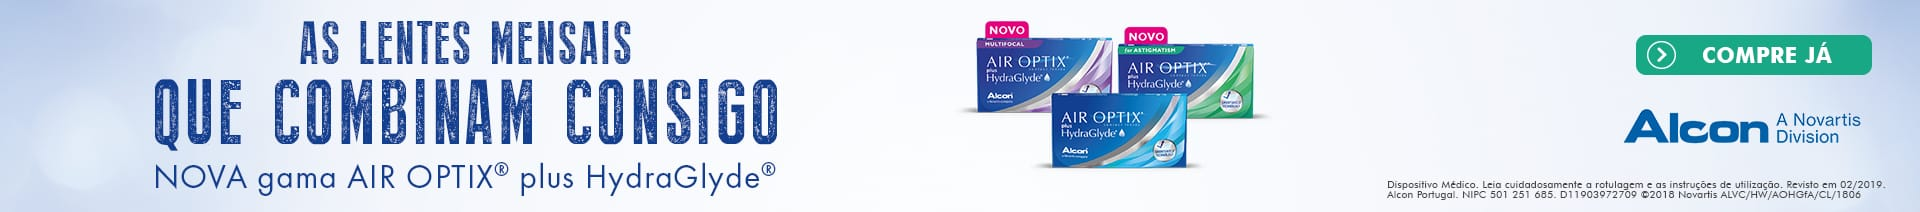 As lentes de contacto Air Optix Hydraglyde mensias que combinam consigo